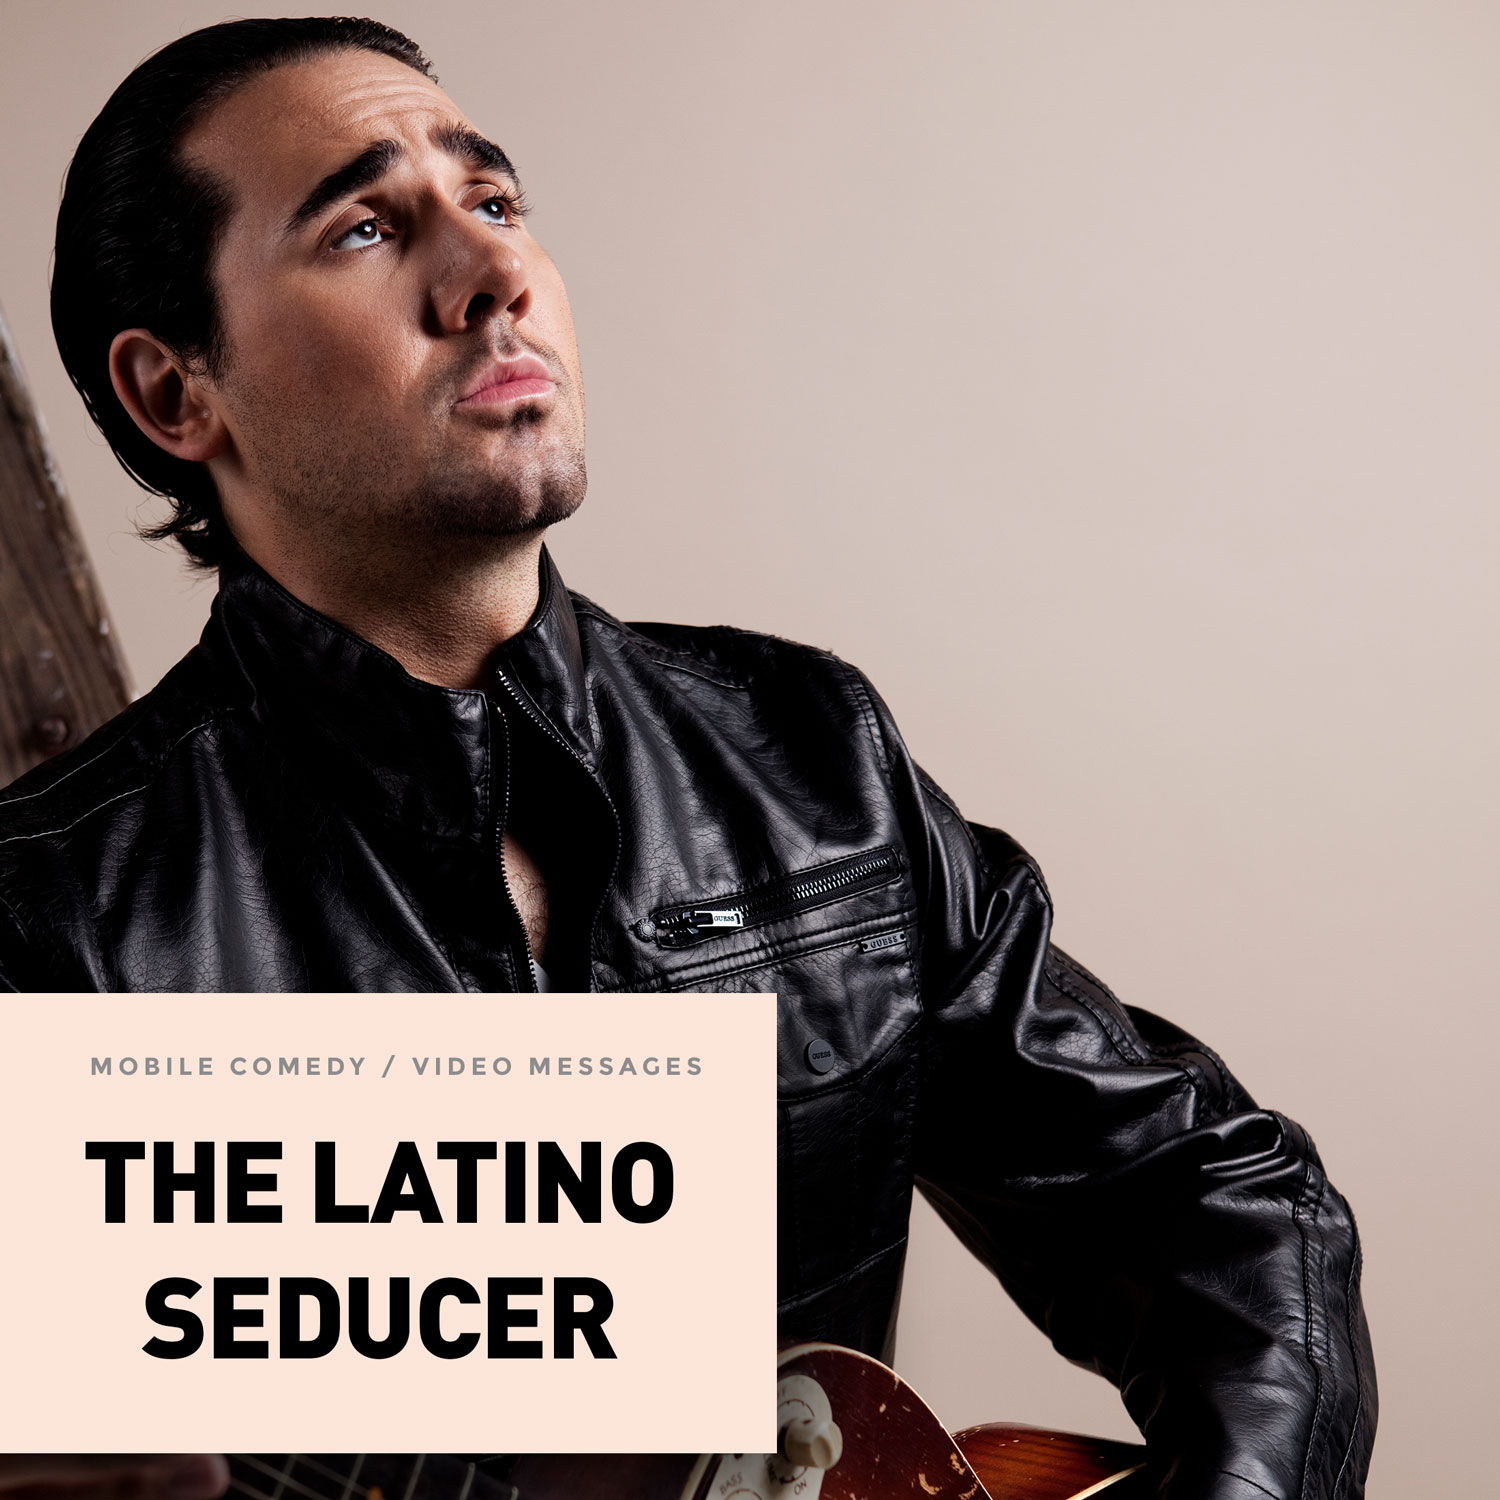 Seduce women, tell stories, and give advice with Carlos, from the HEY! video eCard Latino Seducer collection. A masculine Latino, CARLOS is a fan of silk shirts that show off his chest and enjoys compliments on his mustache. His accent is thick and sincere.